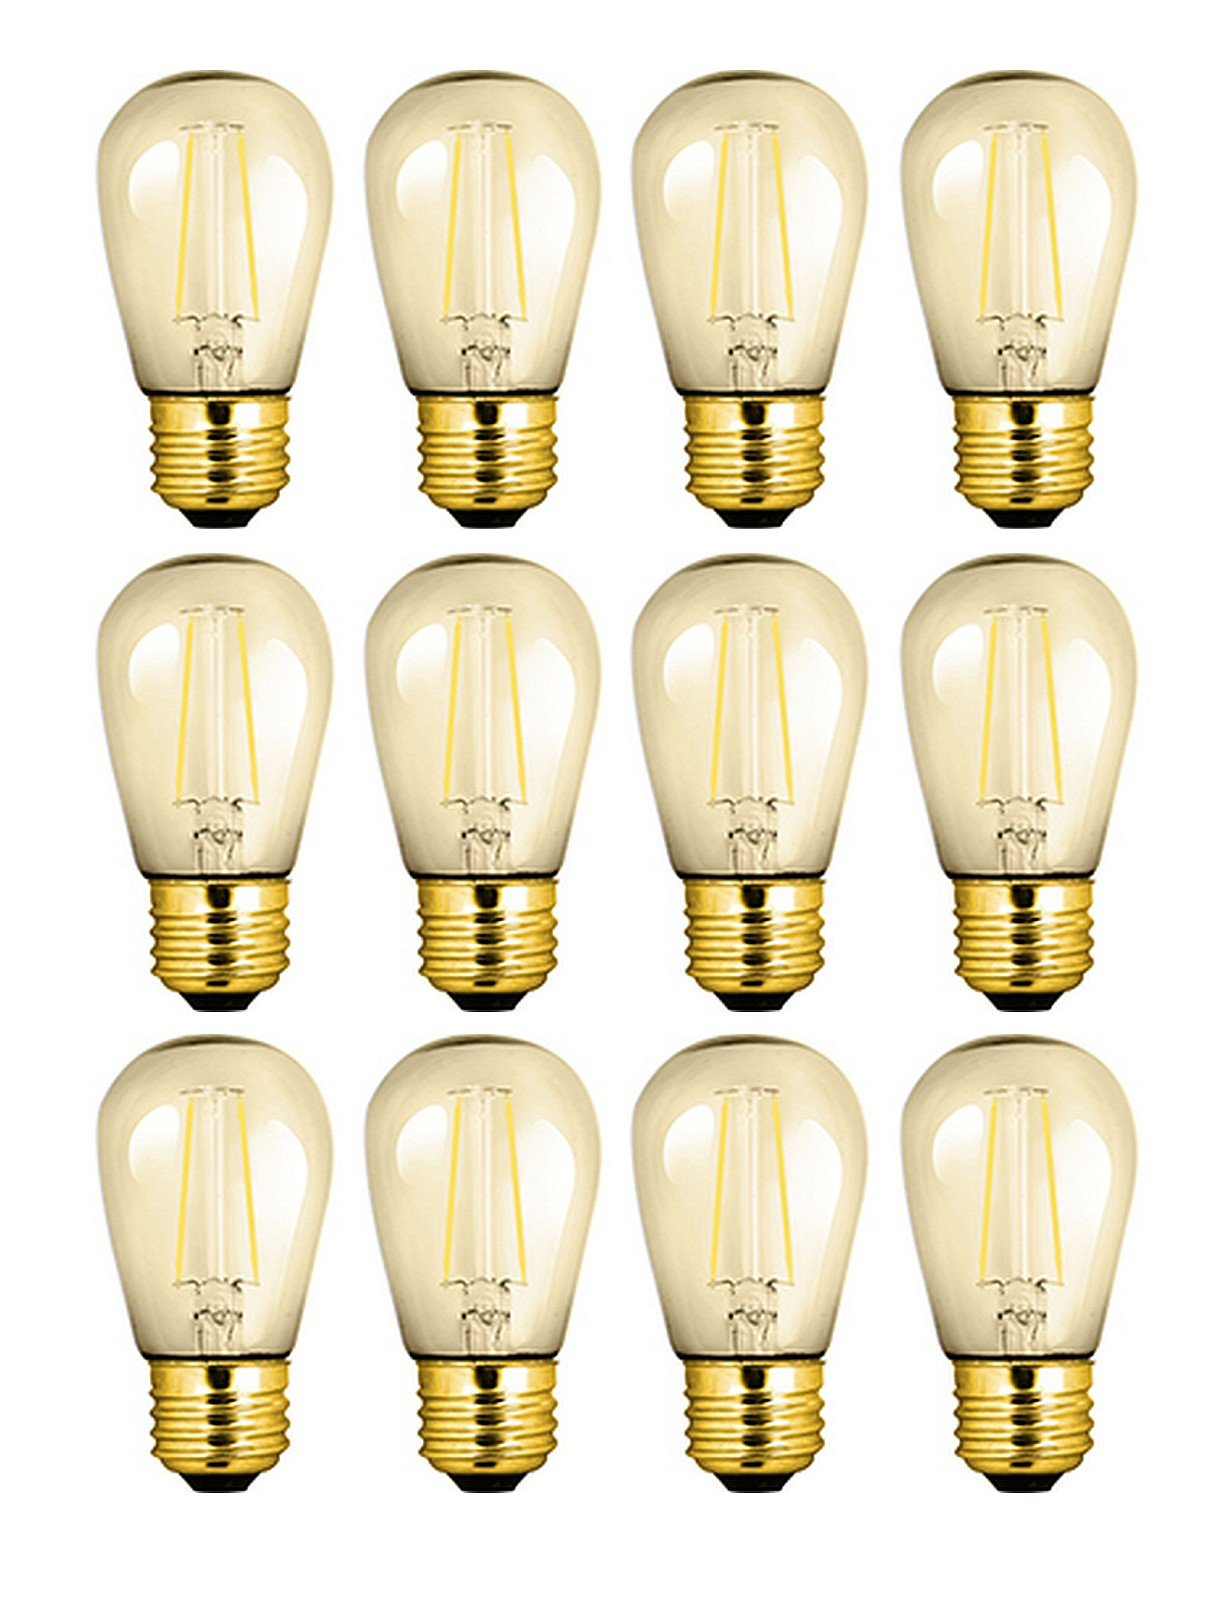 12 Qty. Halco S14AMB2ANT/822/LED 81140 S14 2W 2200K AMBER NON-DIMMABLE FILAMENT E26 ProLED